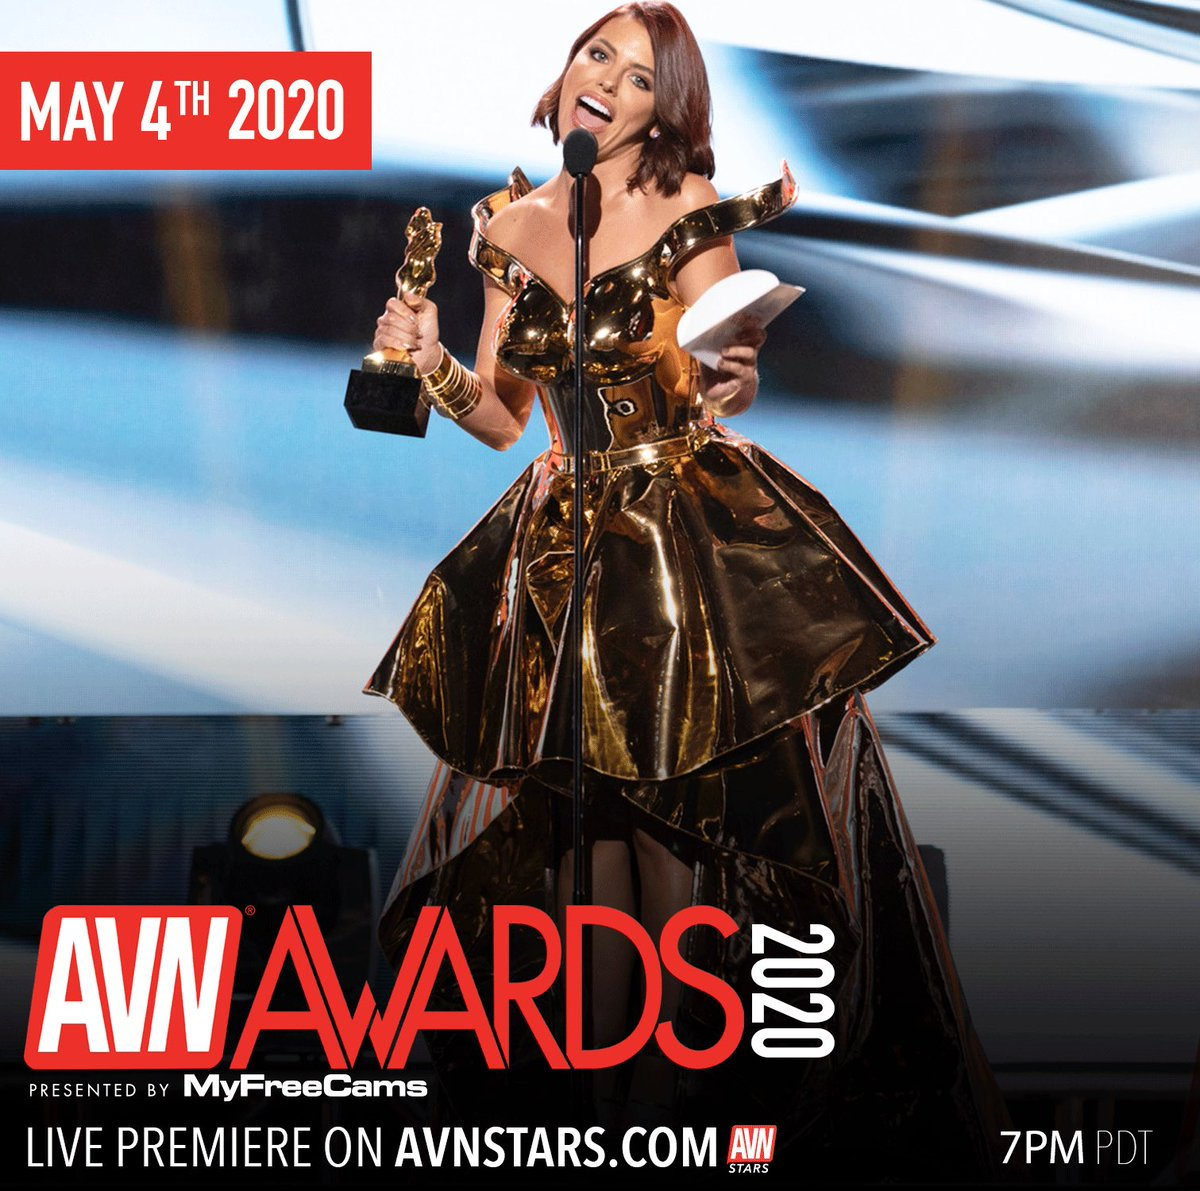 1 hour!!!! 1 hour till the #AVNAwards airs on AVNStars dot com. Be sure to watch @adrianachechik win her award tonight!